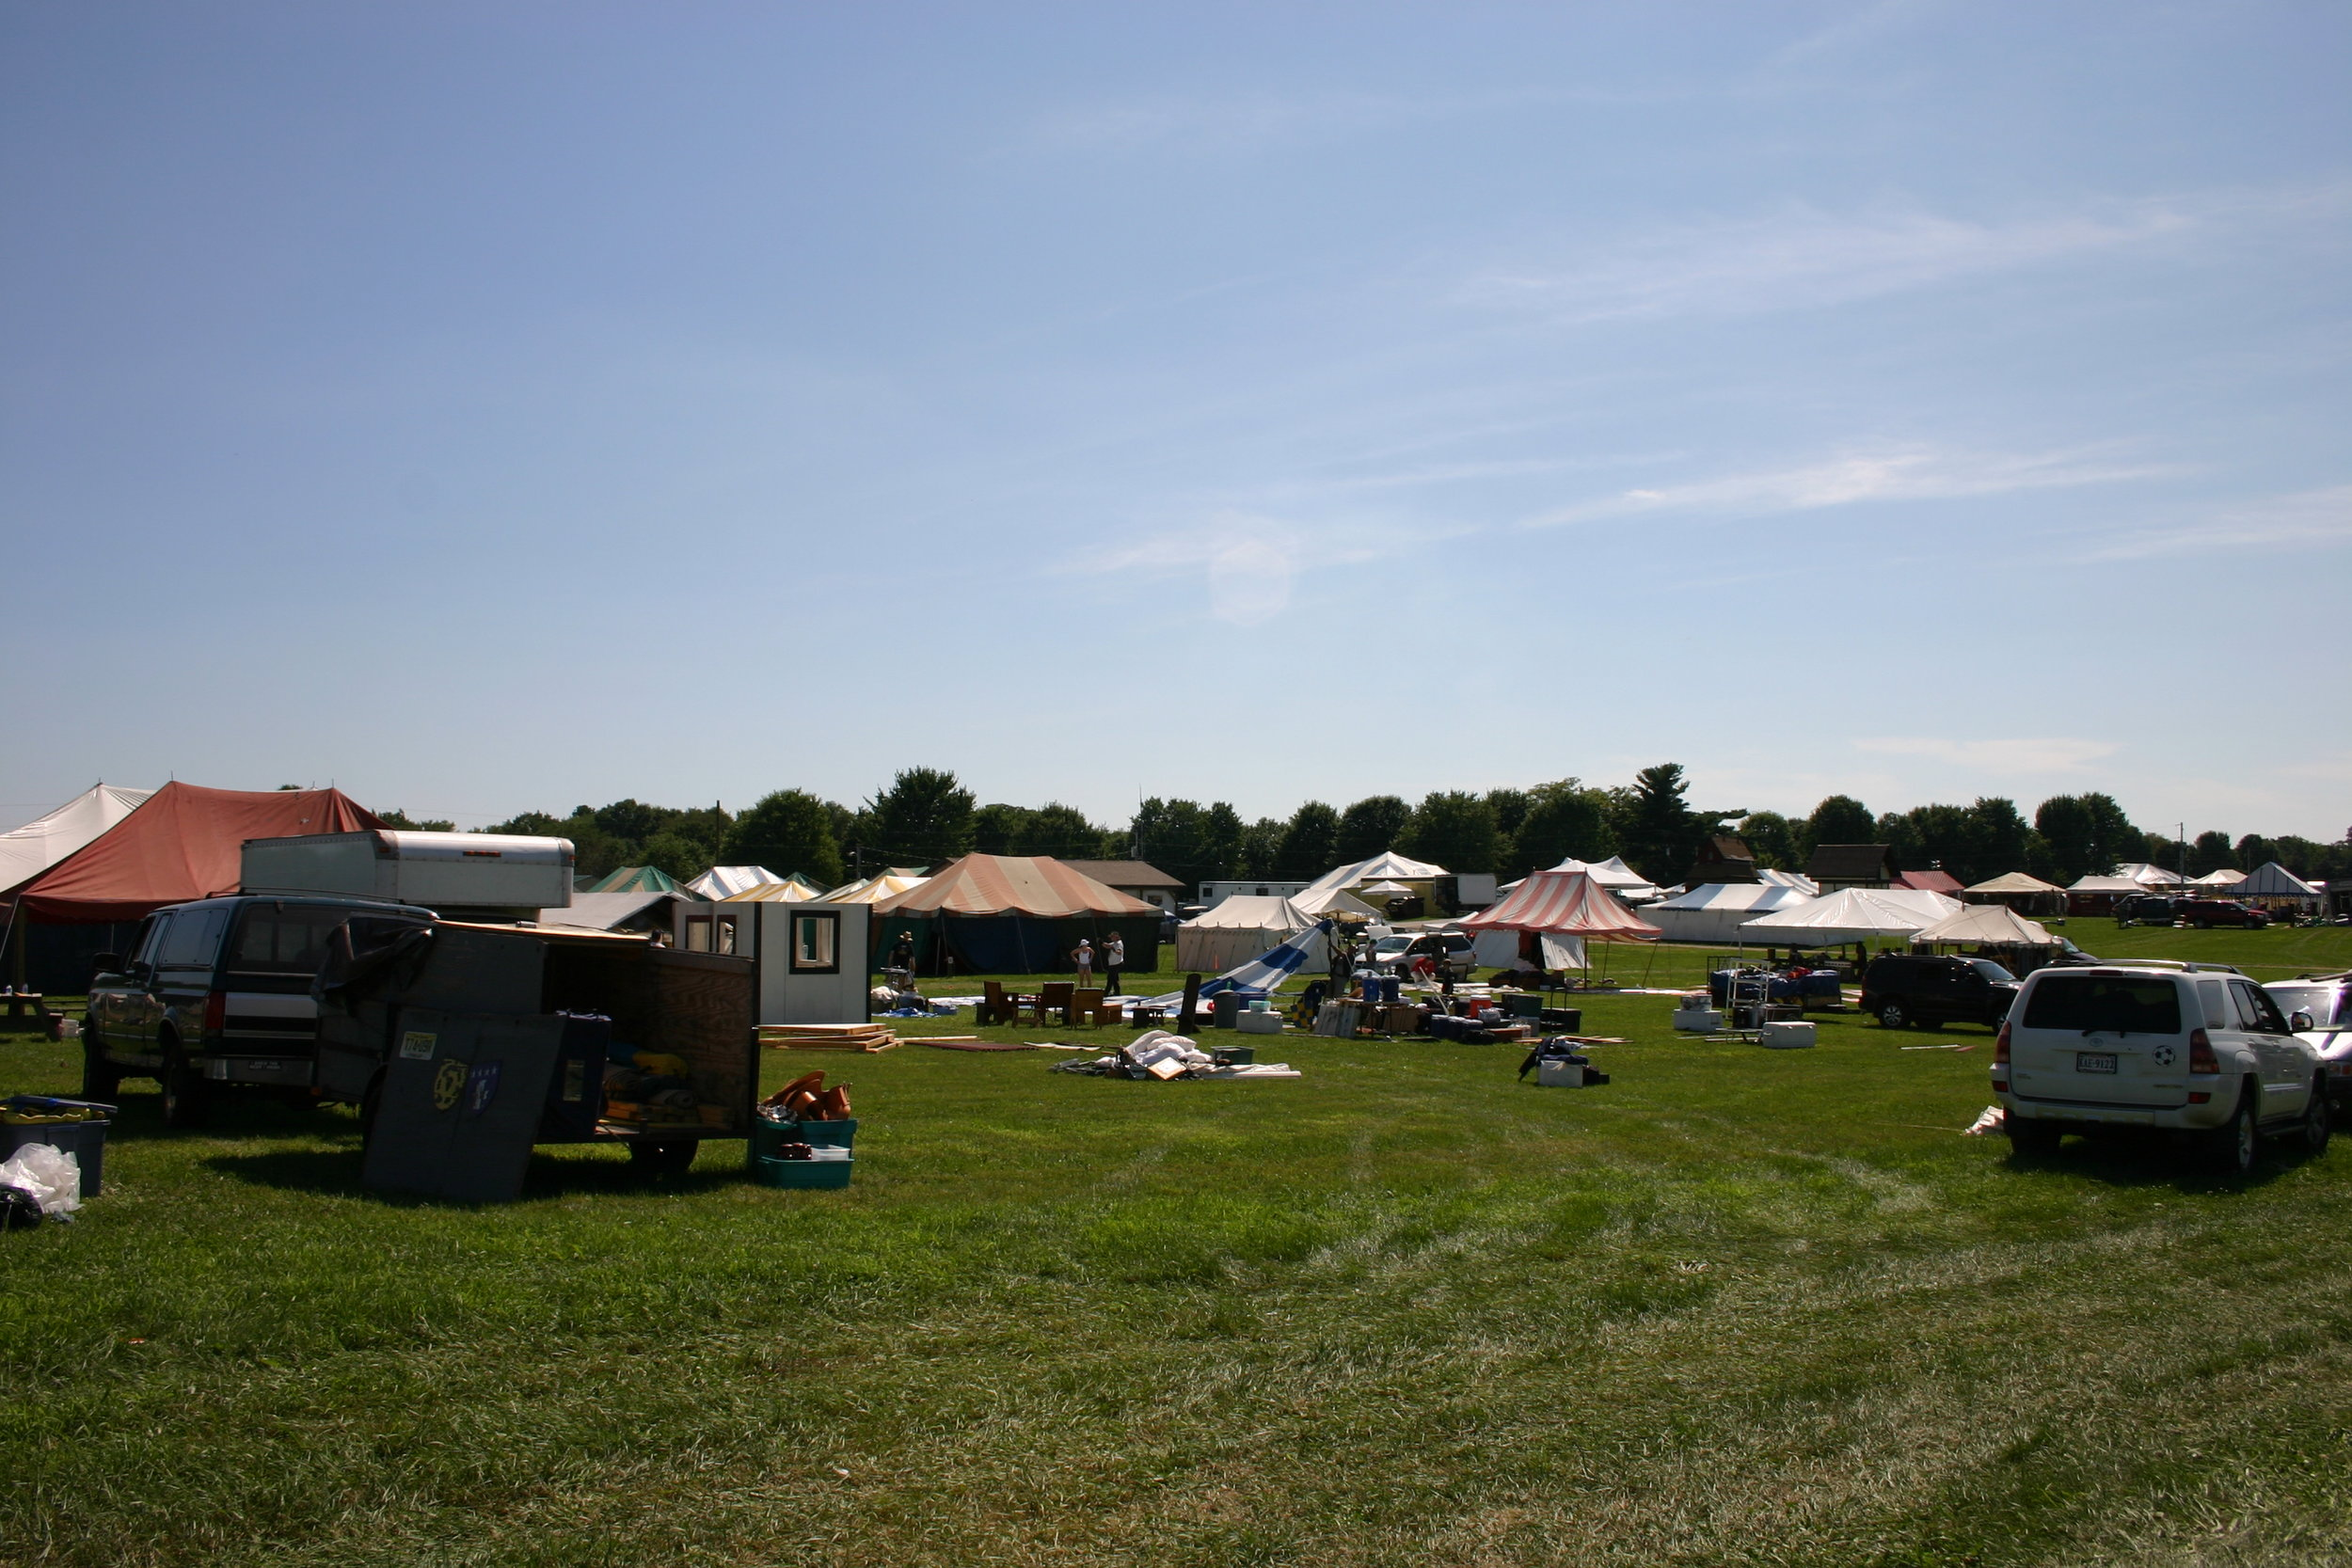 Rent Pennsic camping tents